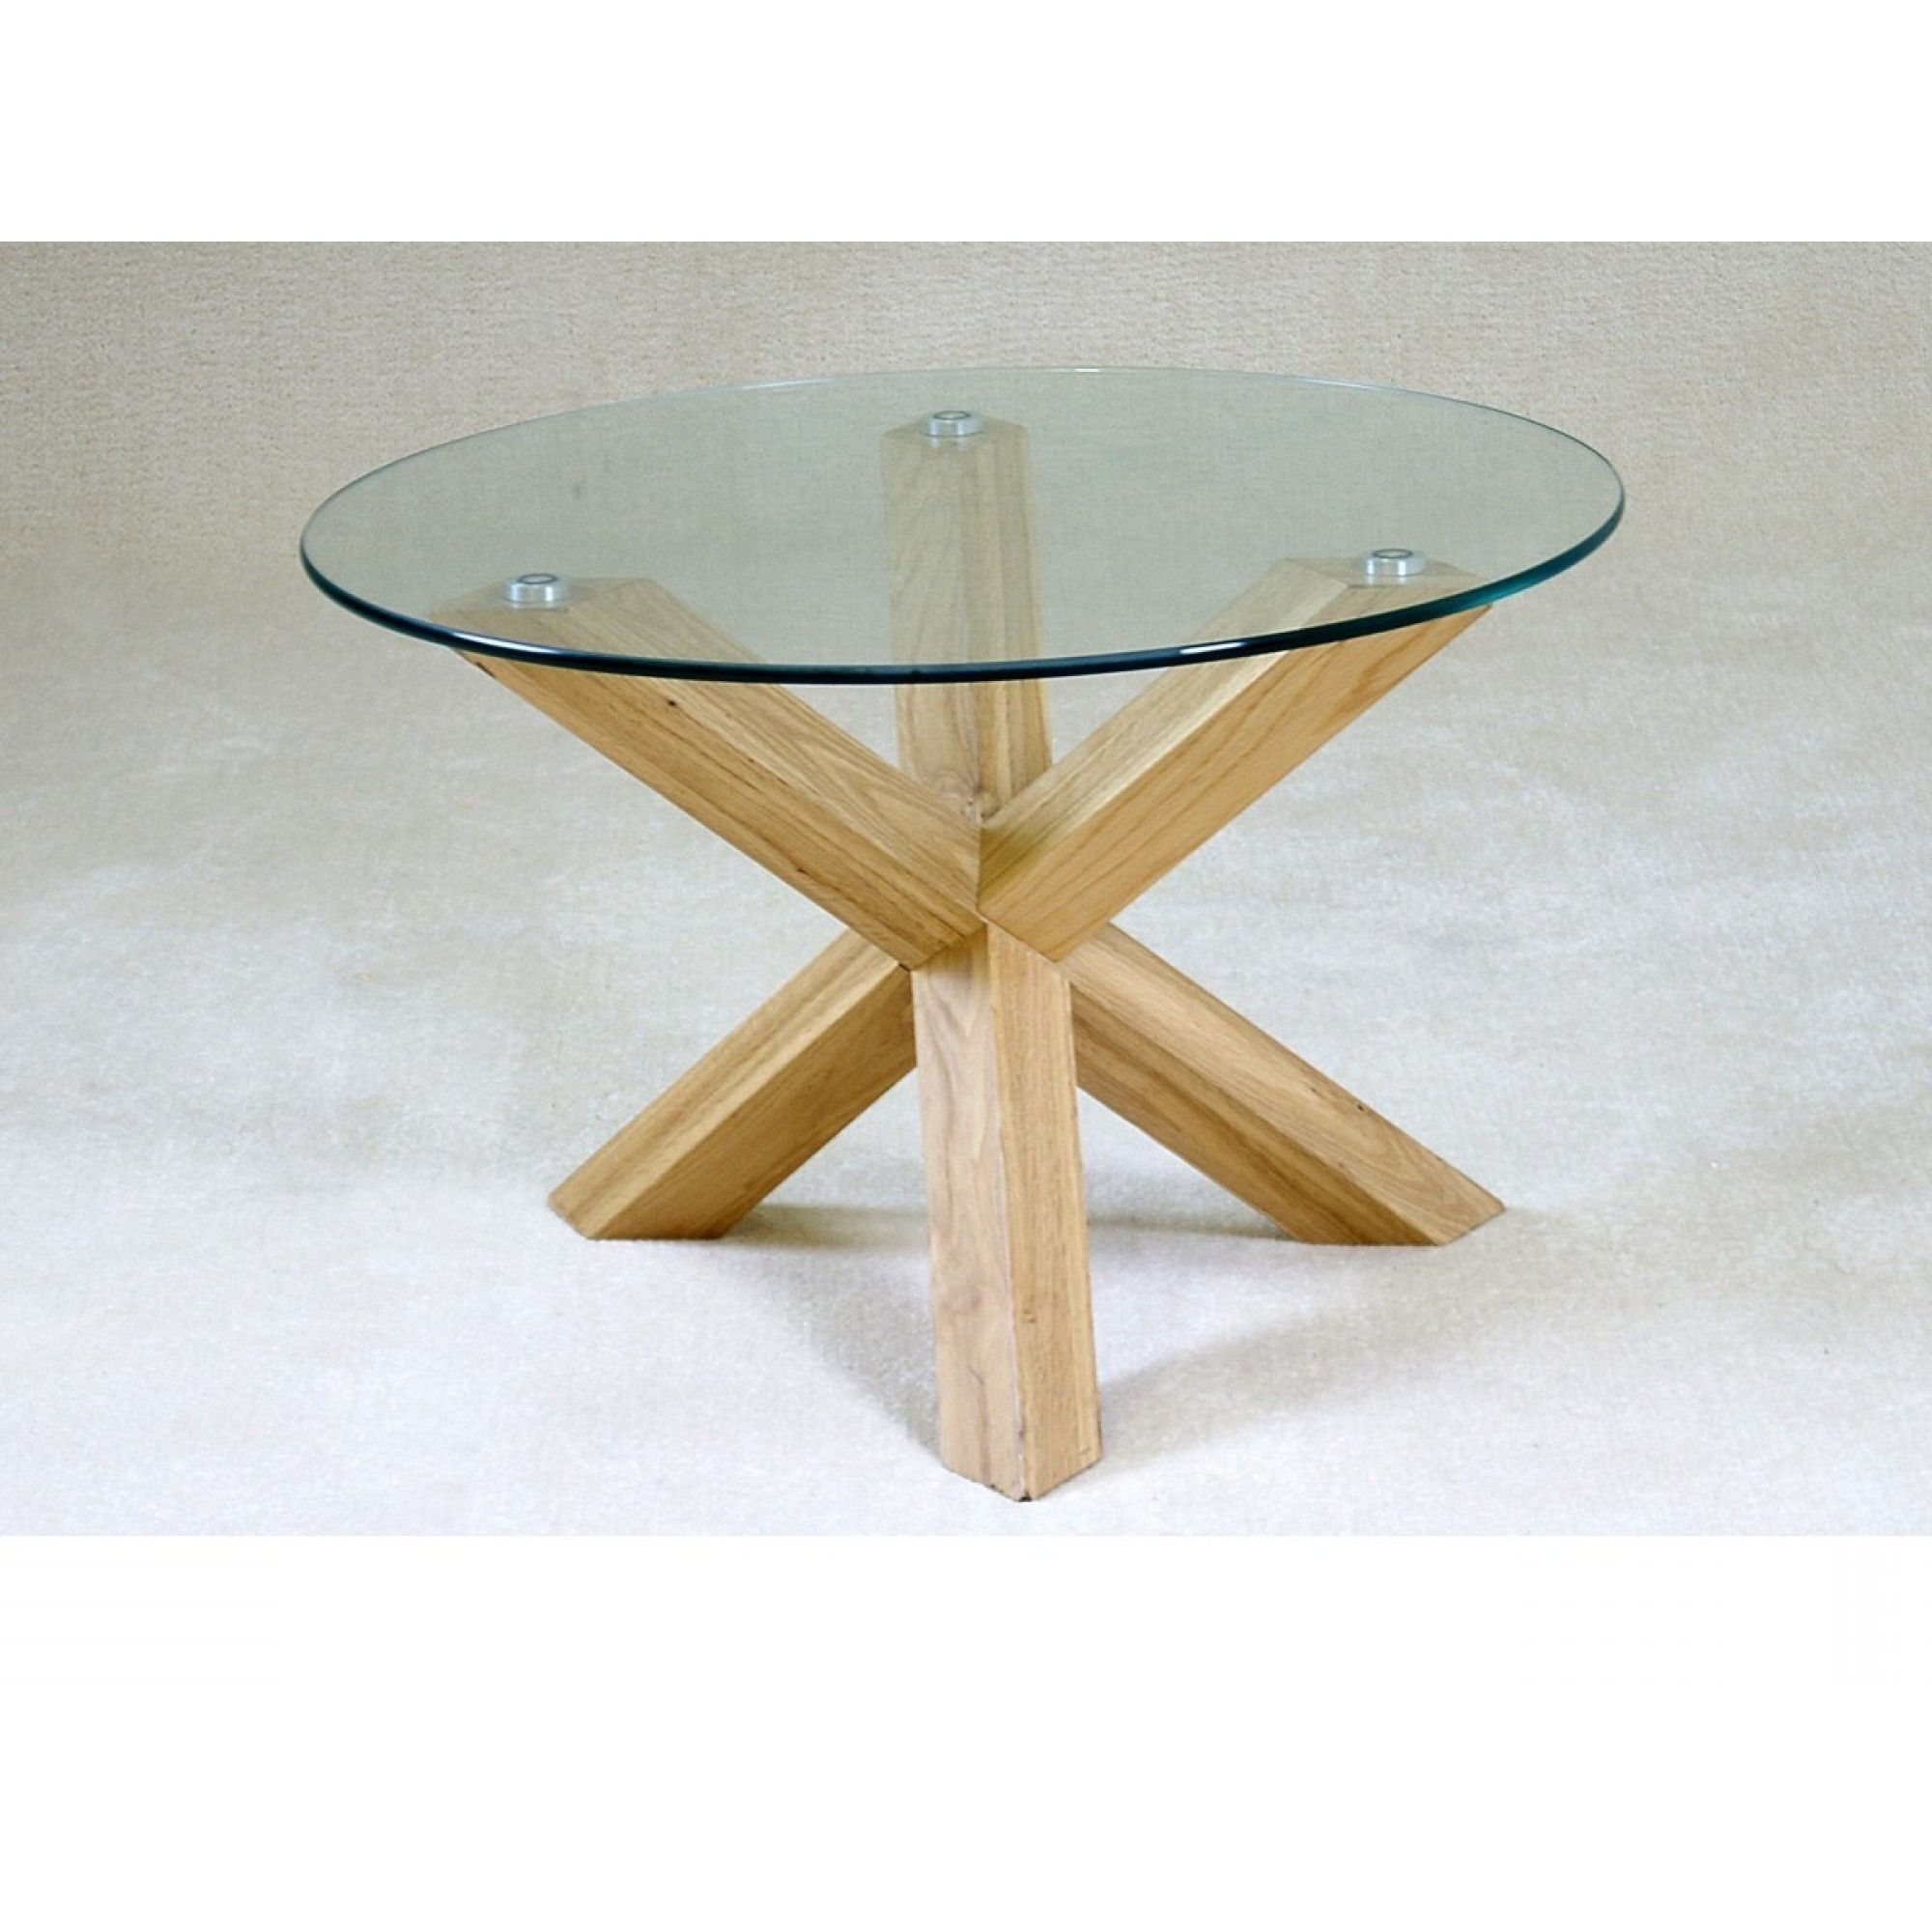 Table, Round Regarding Glass Dining Tables With Oak Legs (View 24 of 25)